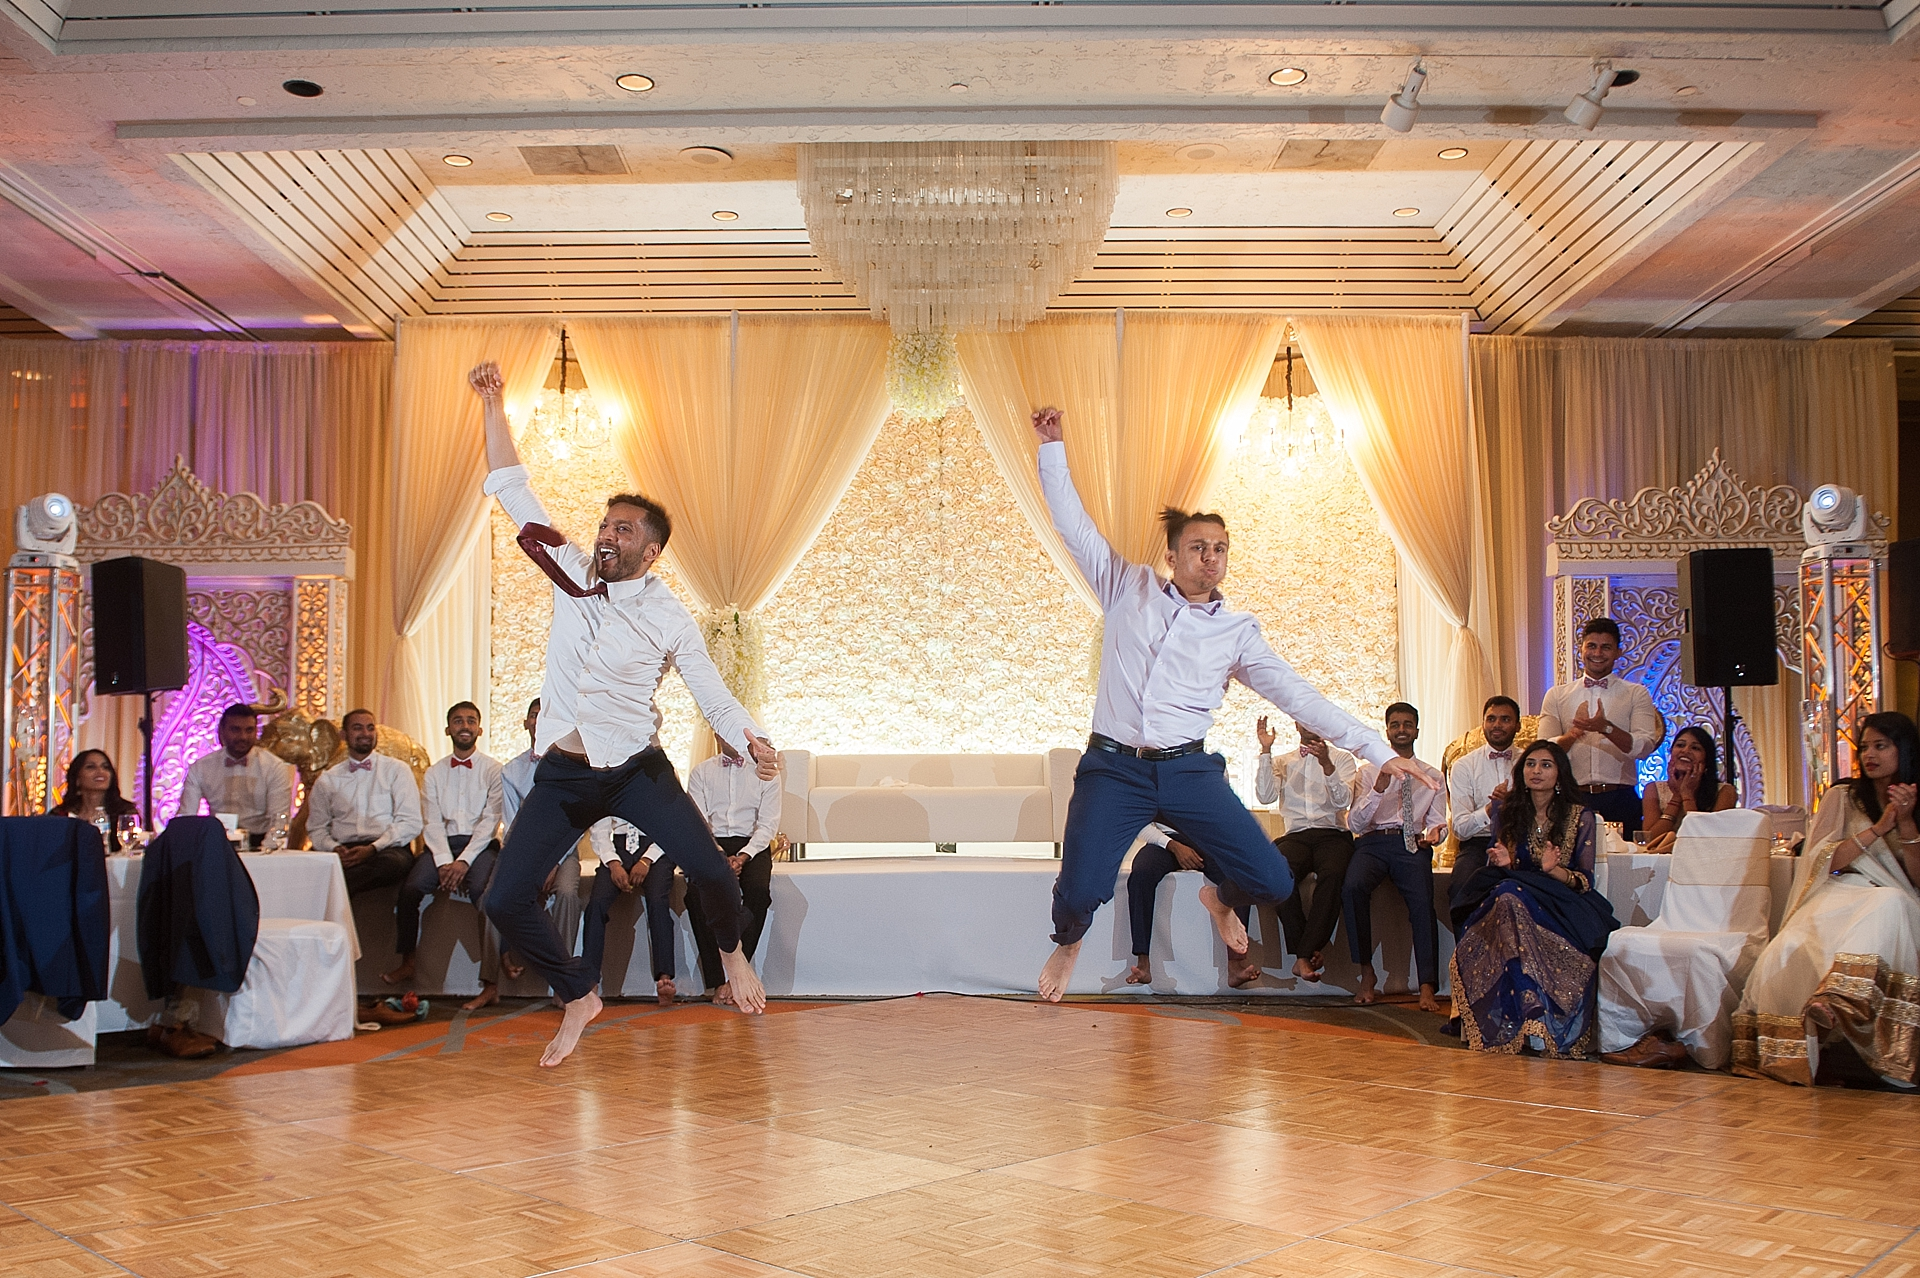 Prexa_Harry_Columbus_Crown_Plaza_Indian_Wedding0123.jpg